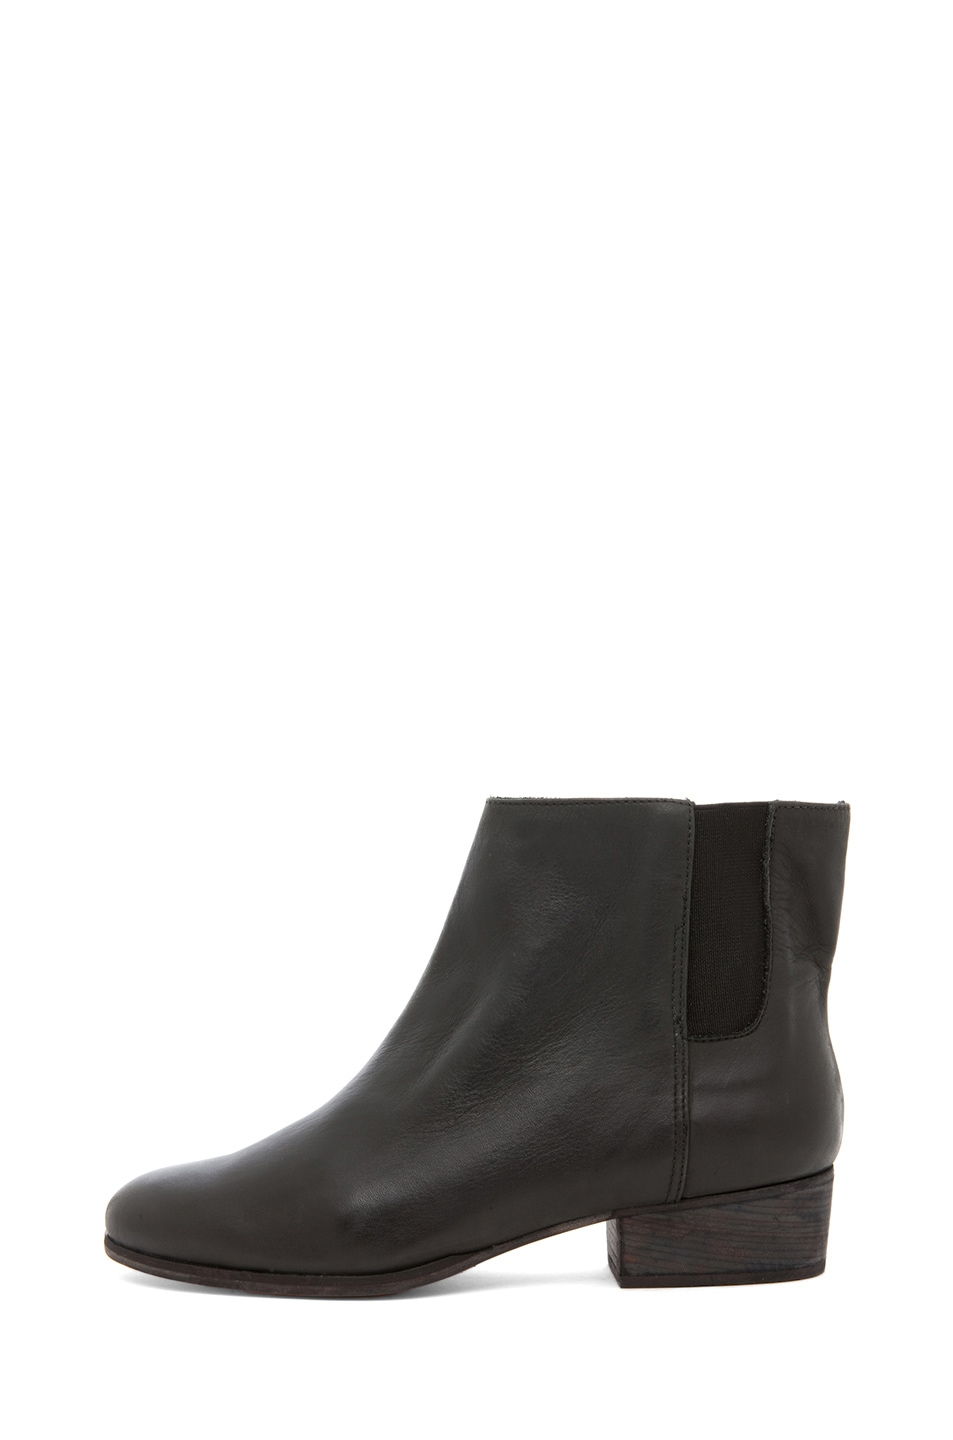 Image 1 of Rachel Comey Marin Bootie in Black Crust